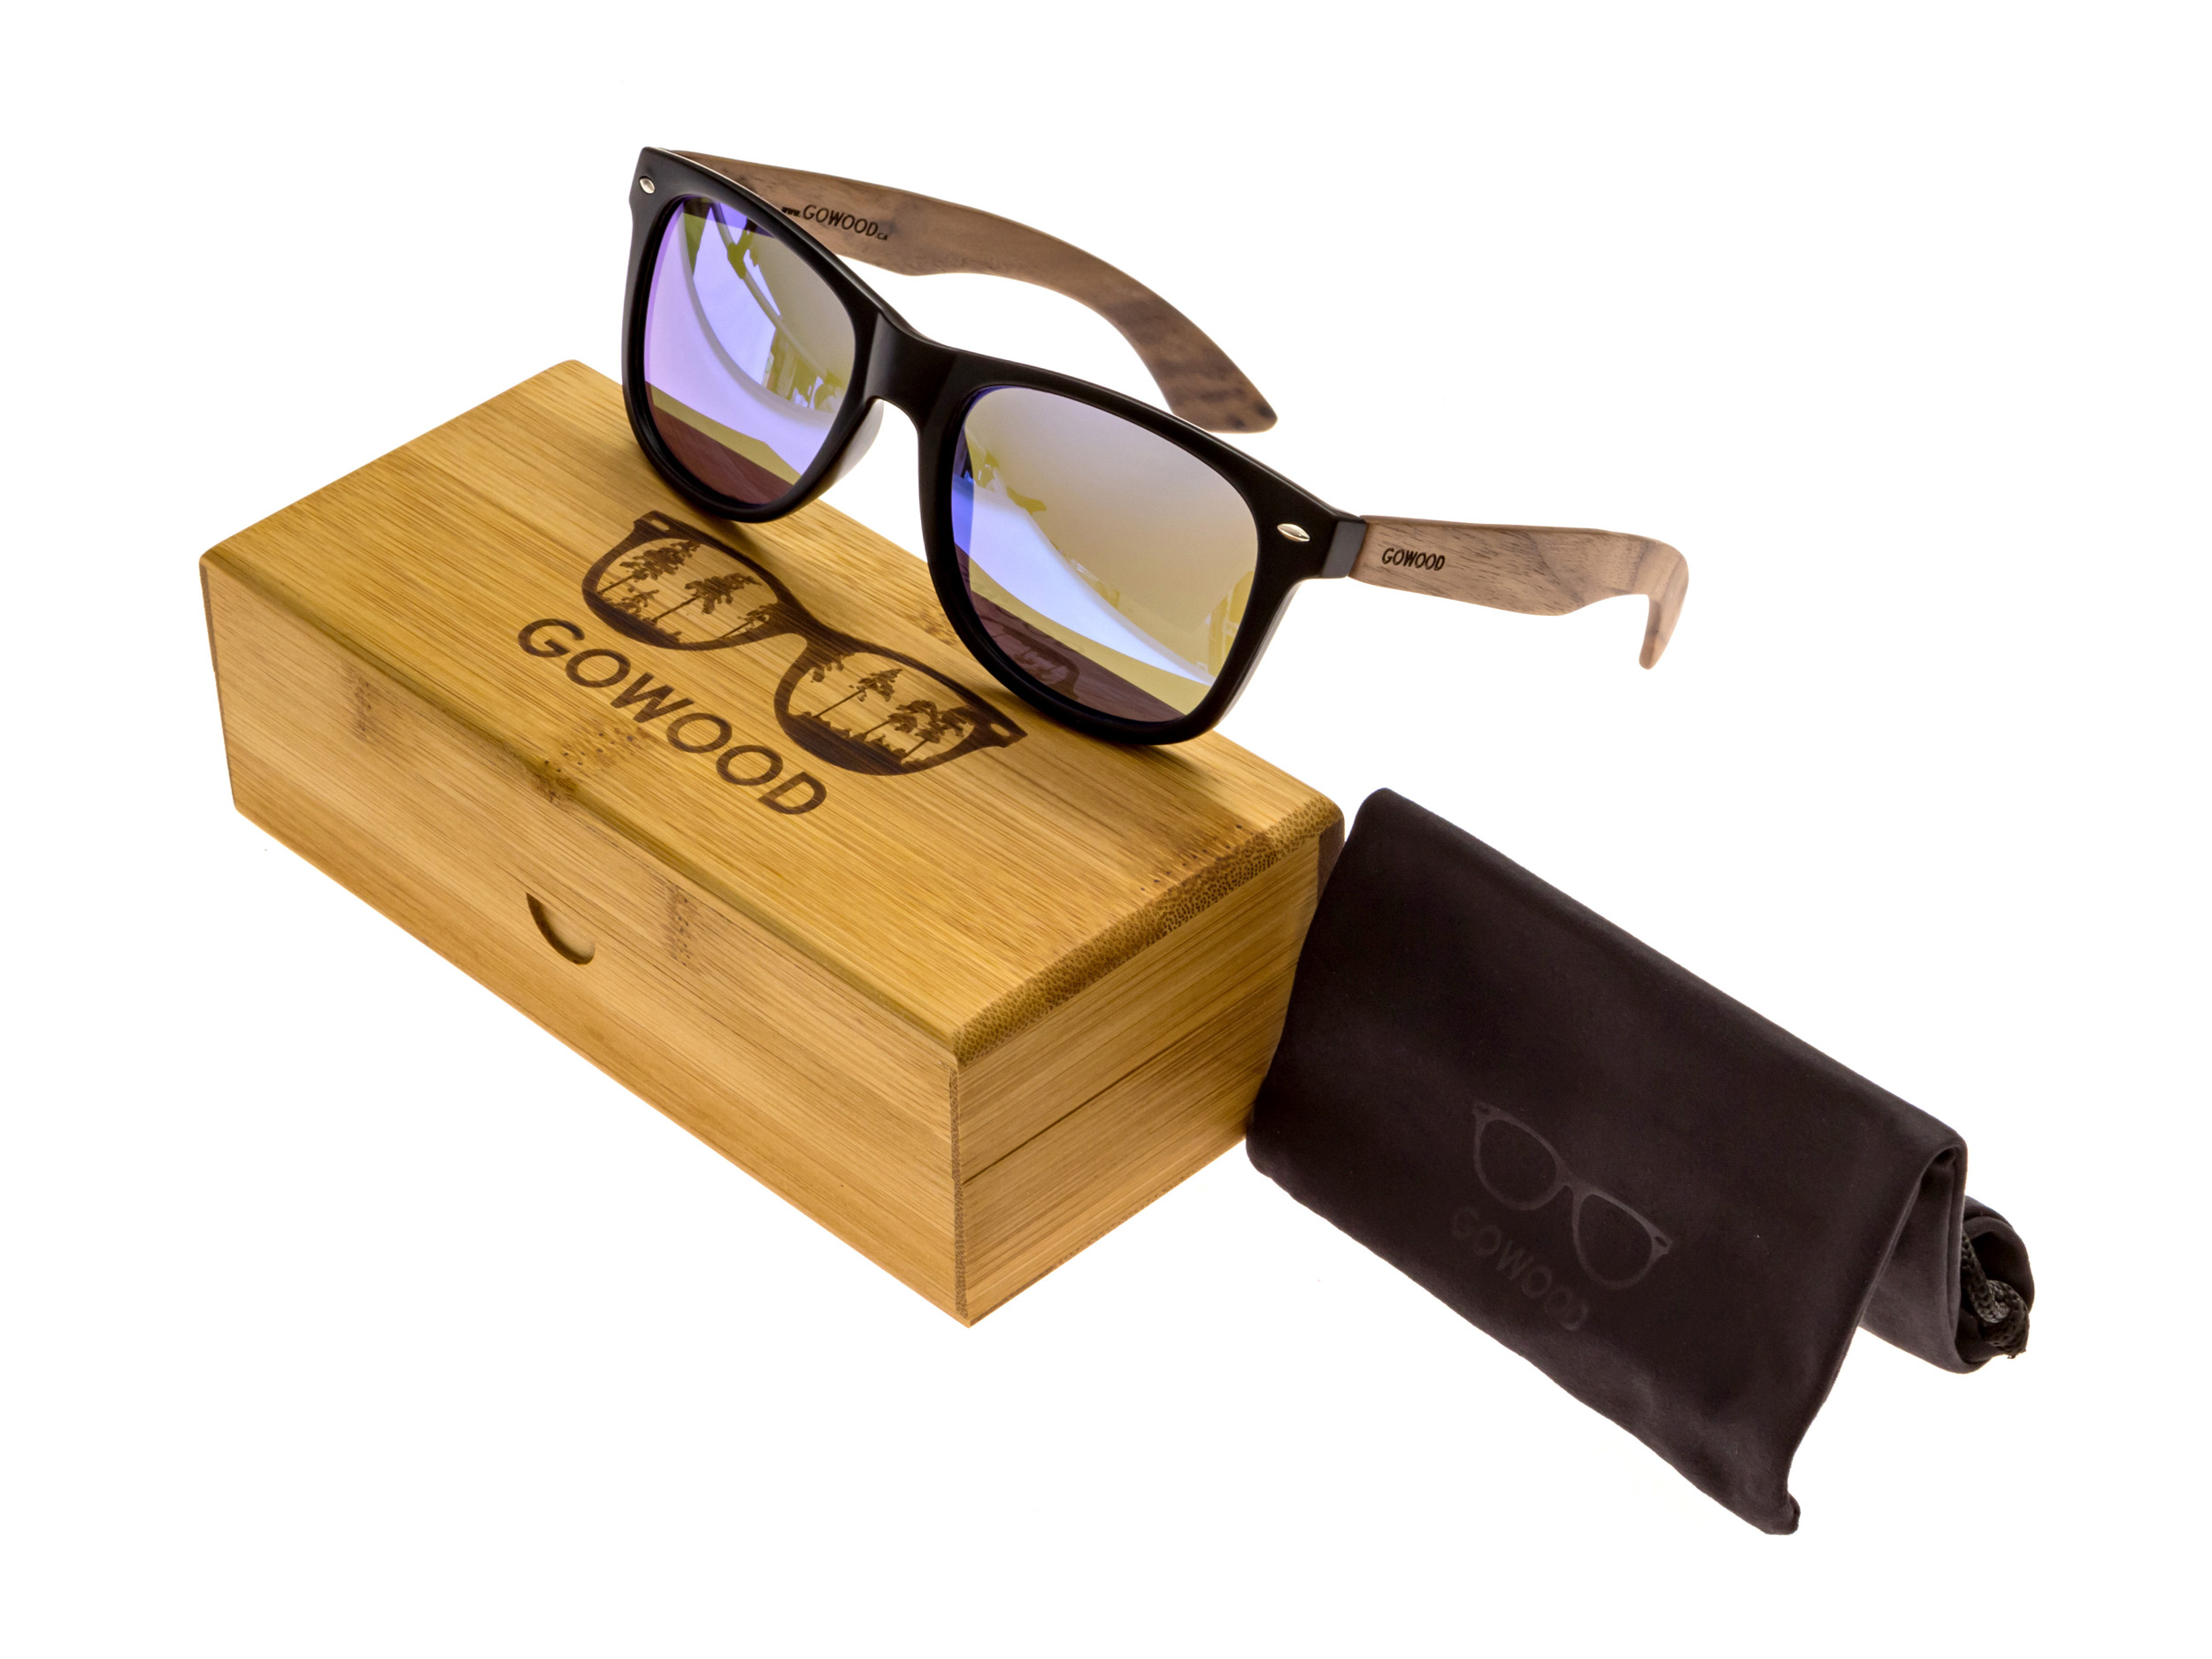 Walnut wood wayfarer sunglasses blue mirrored lenses - set